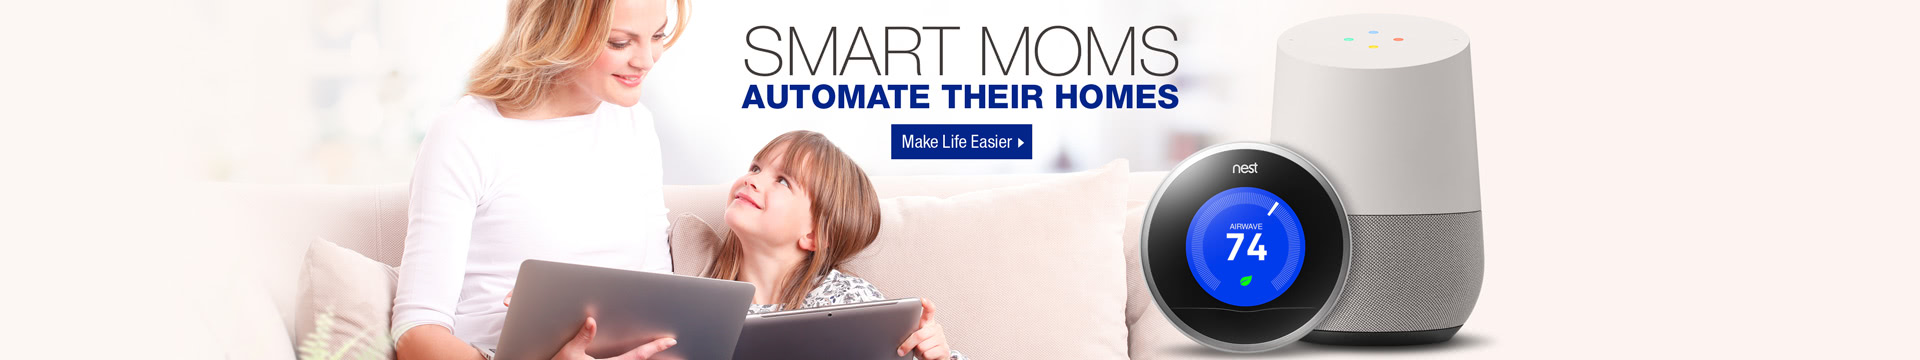 Mother's Day - Smart Moms Automate Their Homes